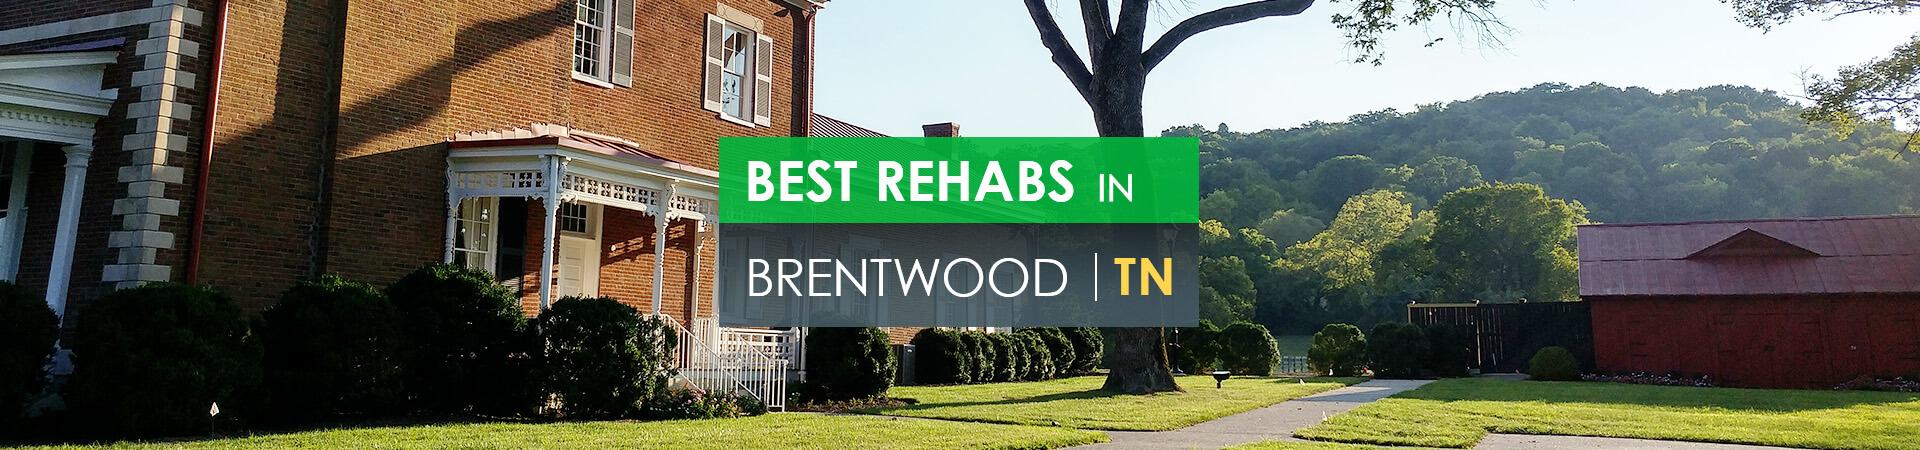 Best rehabs in Brentwood, TN